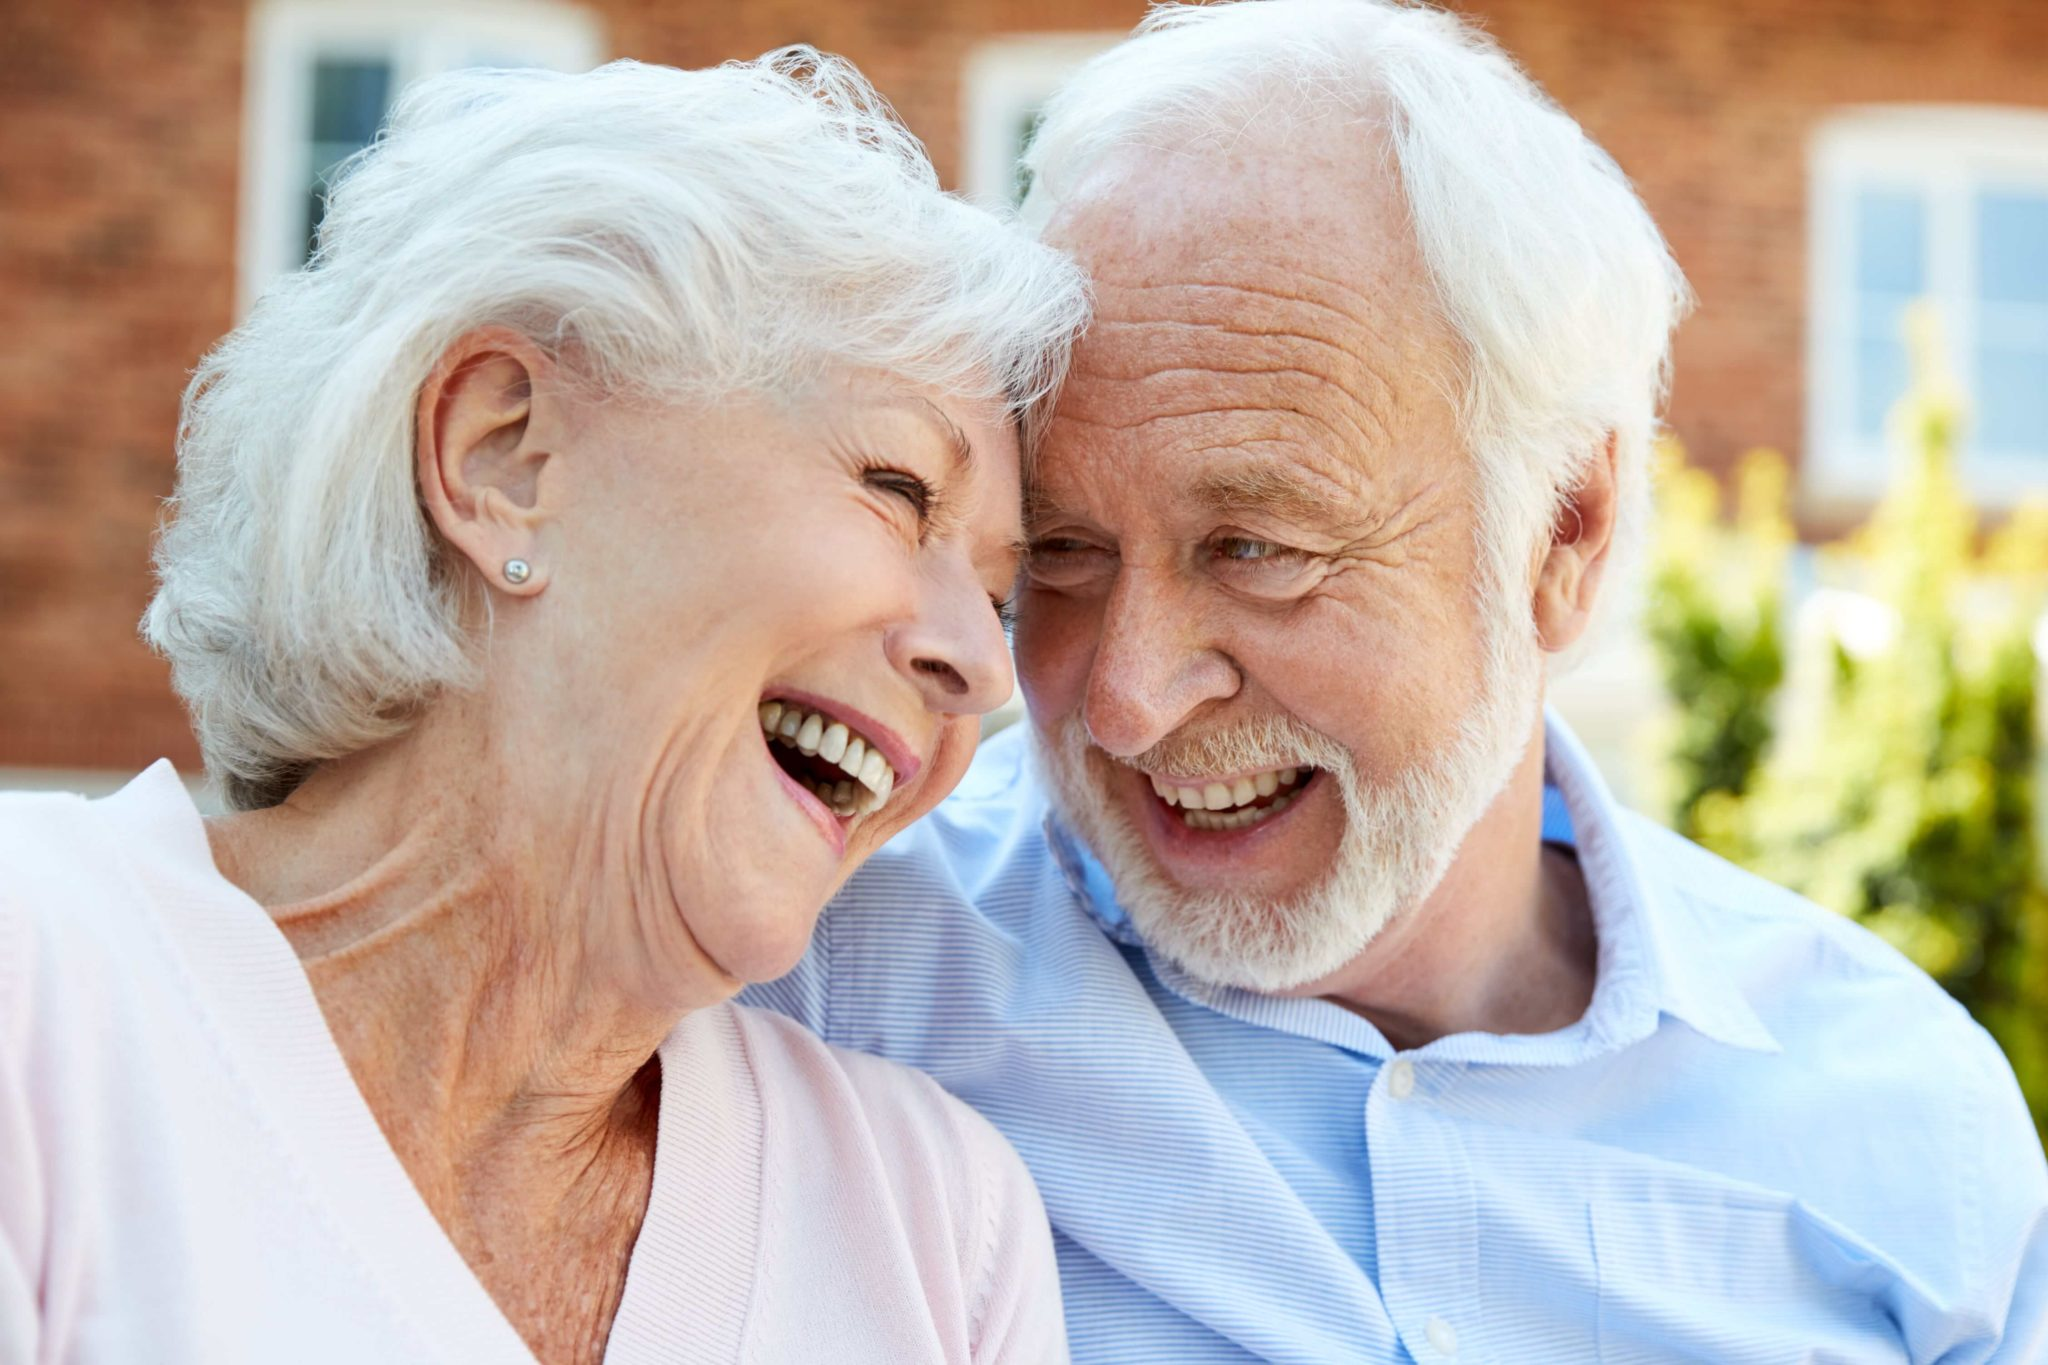 Assisted Living Placement for Couples